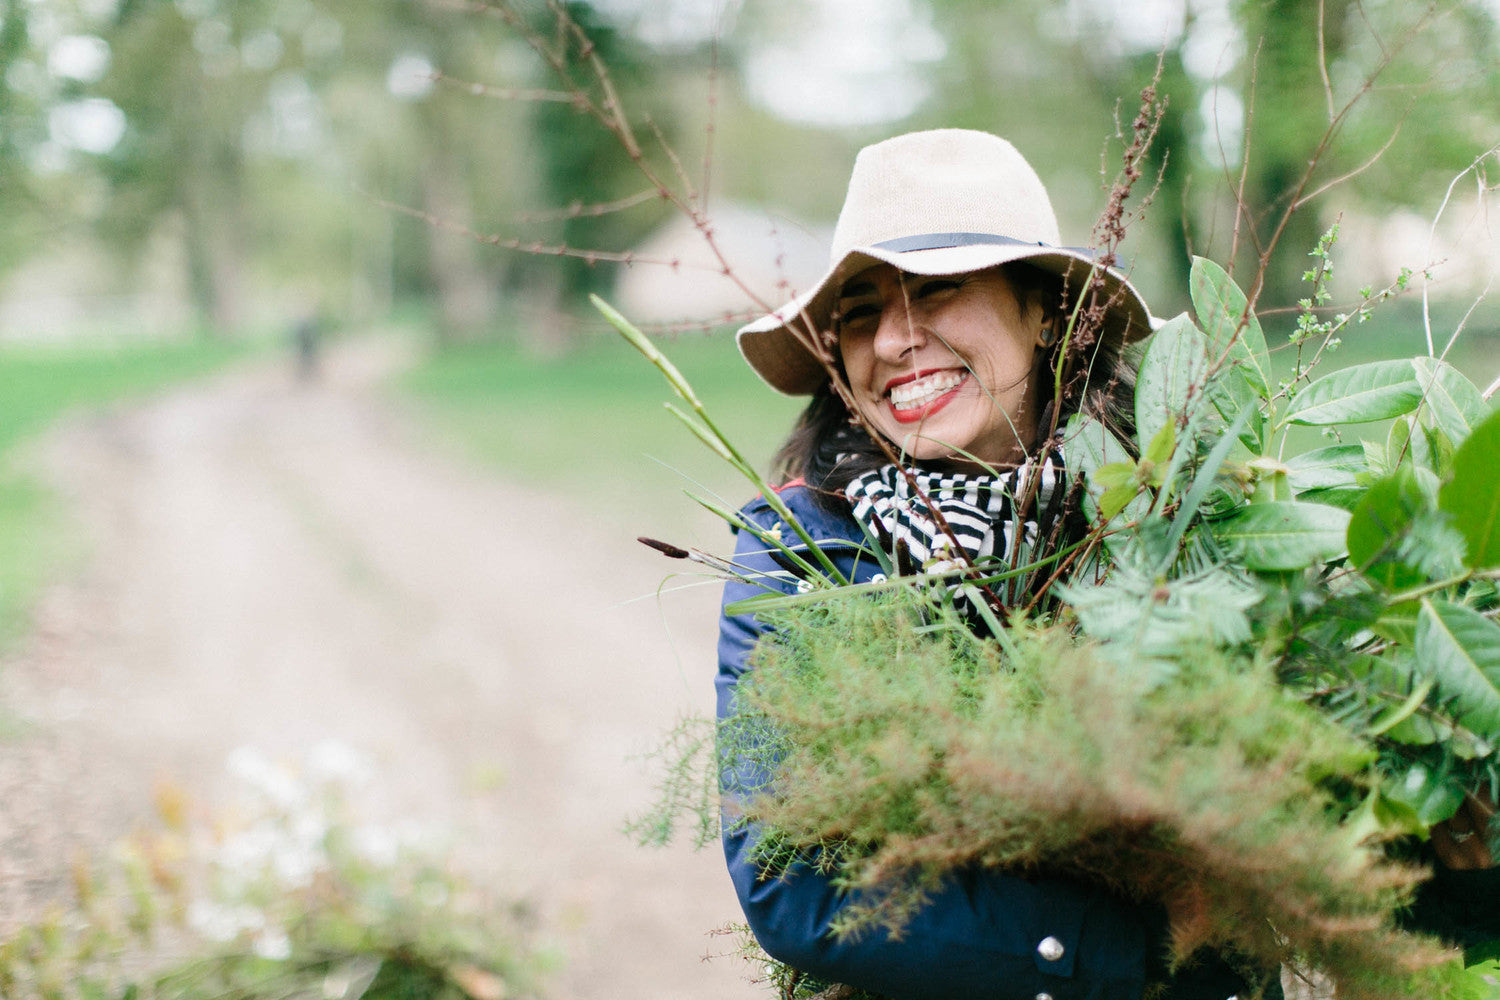 The owner, Pilar Zuniga foraging from the gardens at Wimborne St. Giles in England